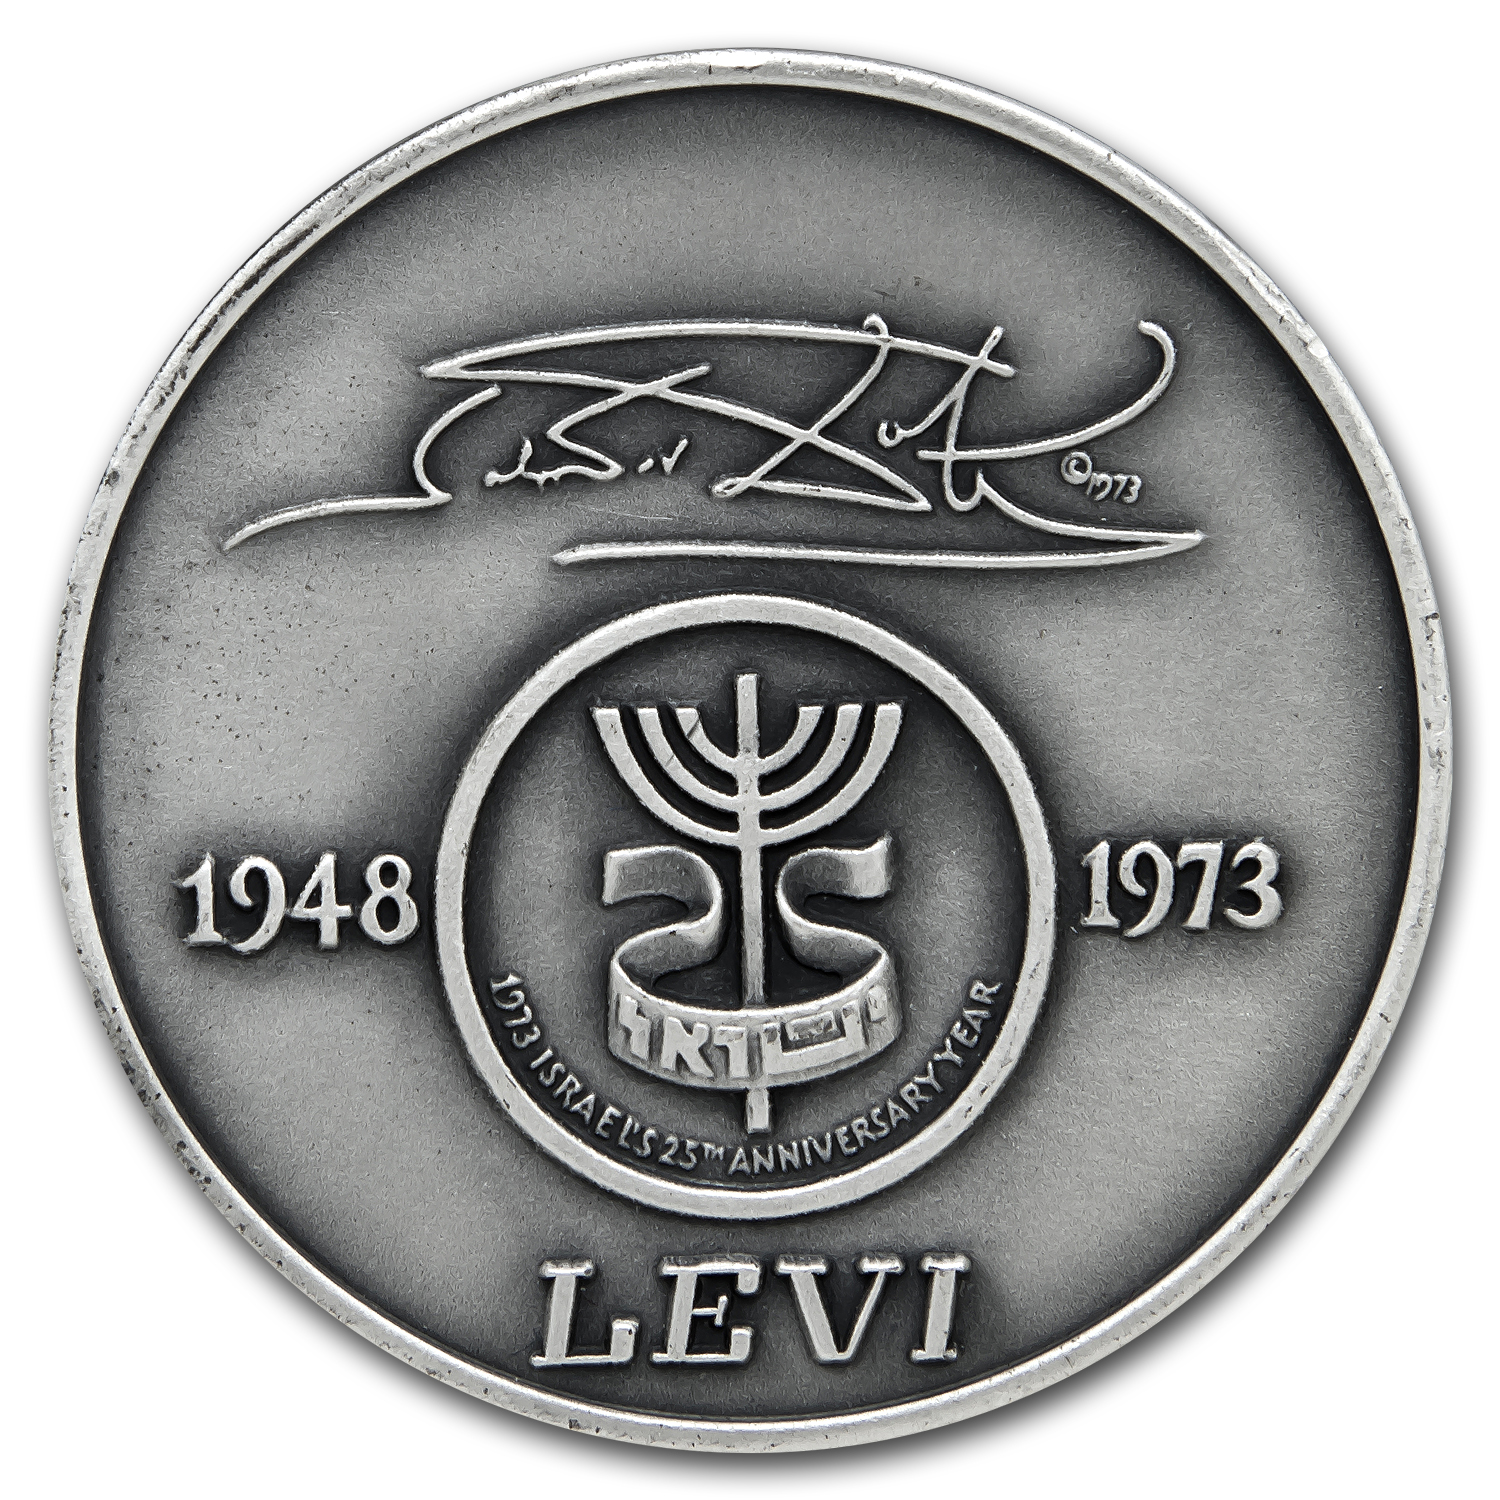 2.67 oz Silver Rounds - 12 Tribes of Israel (Levi)